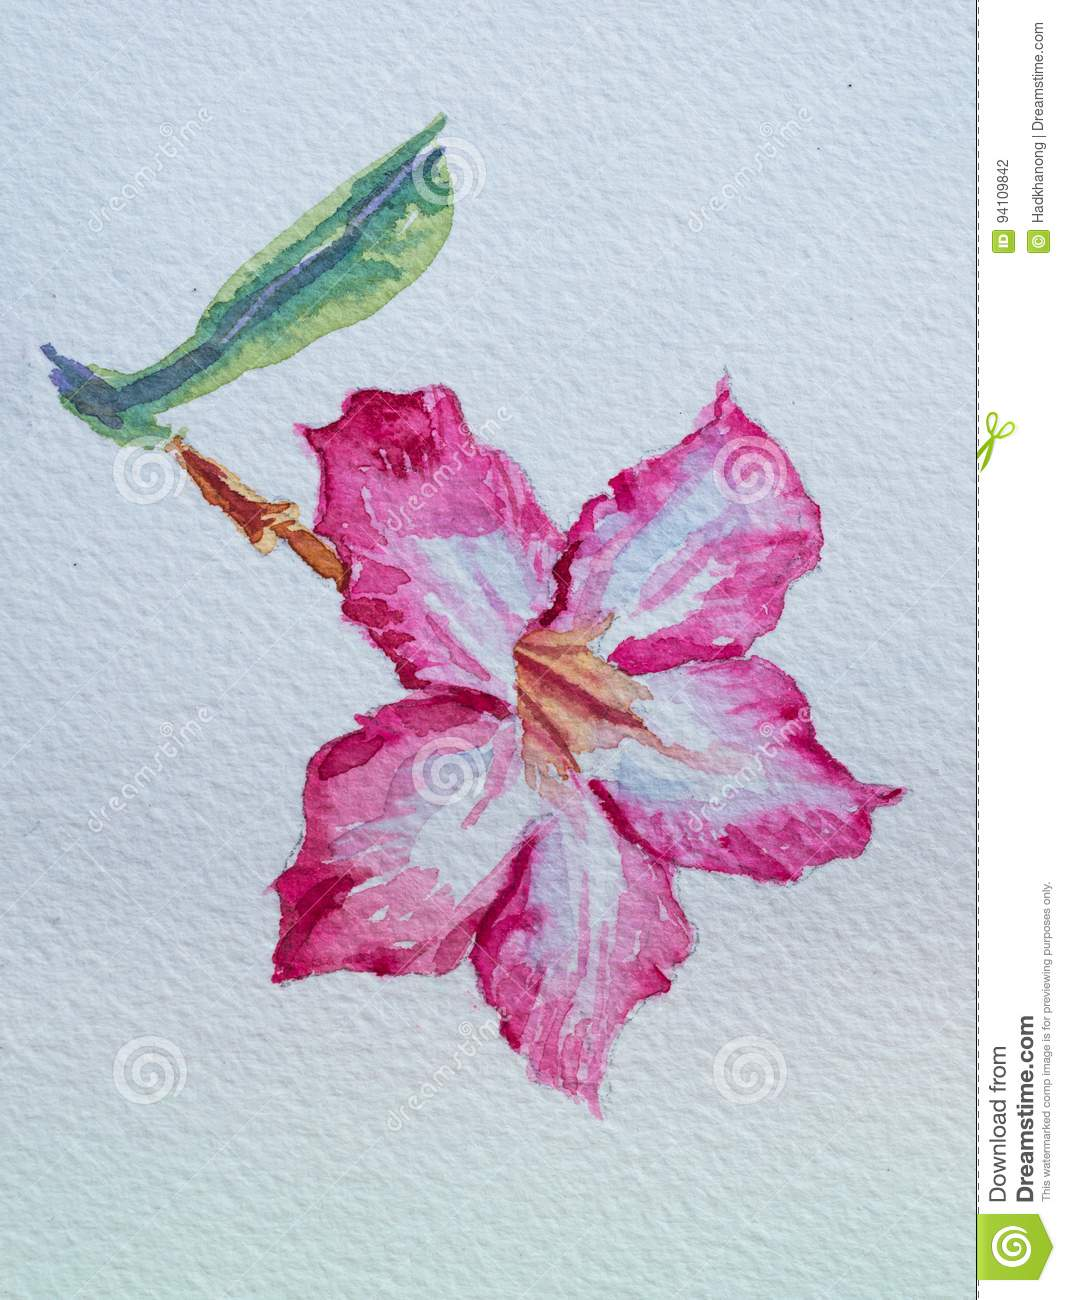 115 Aesthetic Flower Painting Photos Free Royalty Free Stock Photos From Dreamstime